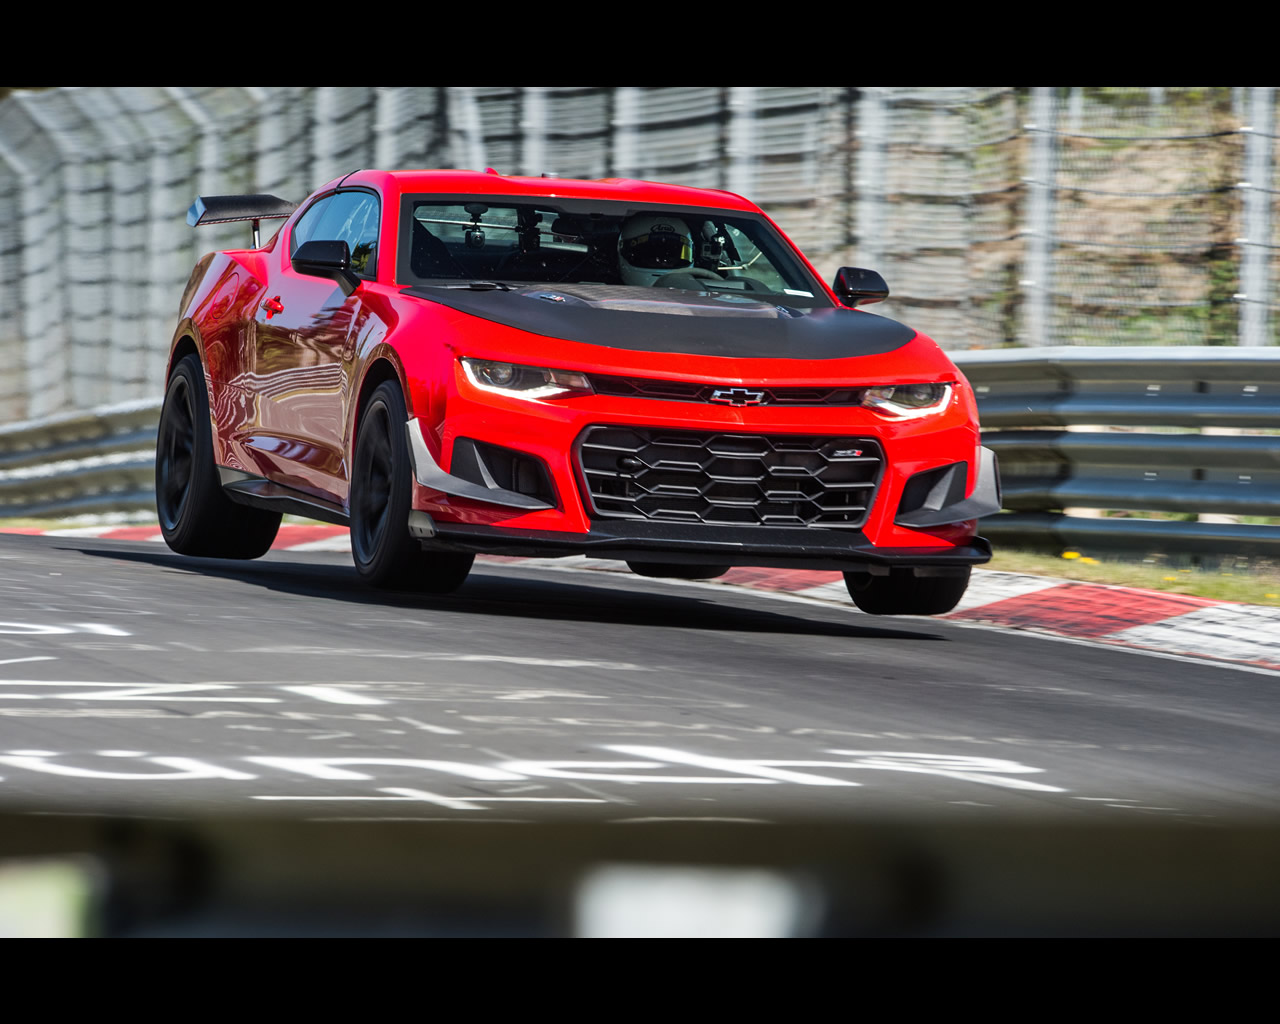 Chevrolet Camaro Zl1 Nascar Cup And Zl1 1le For 2018